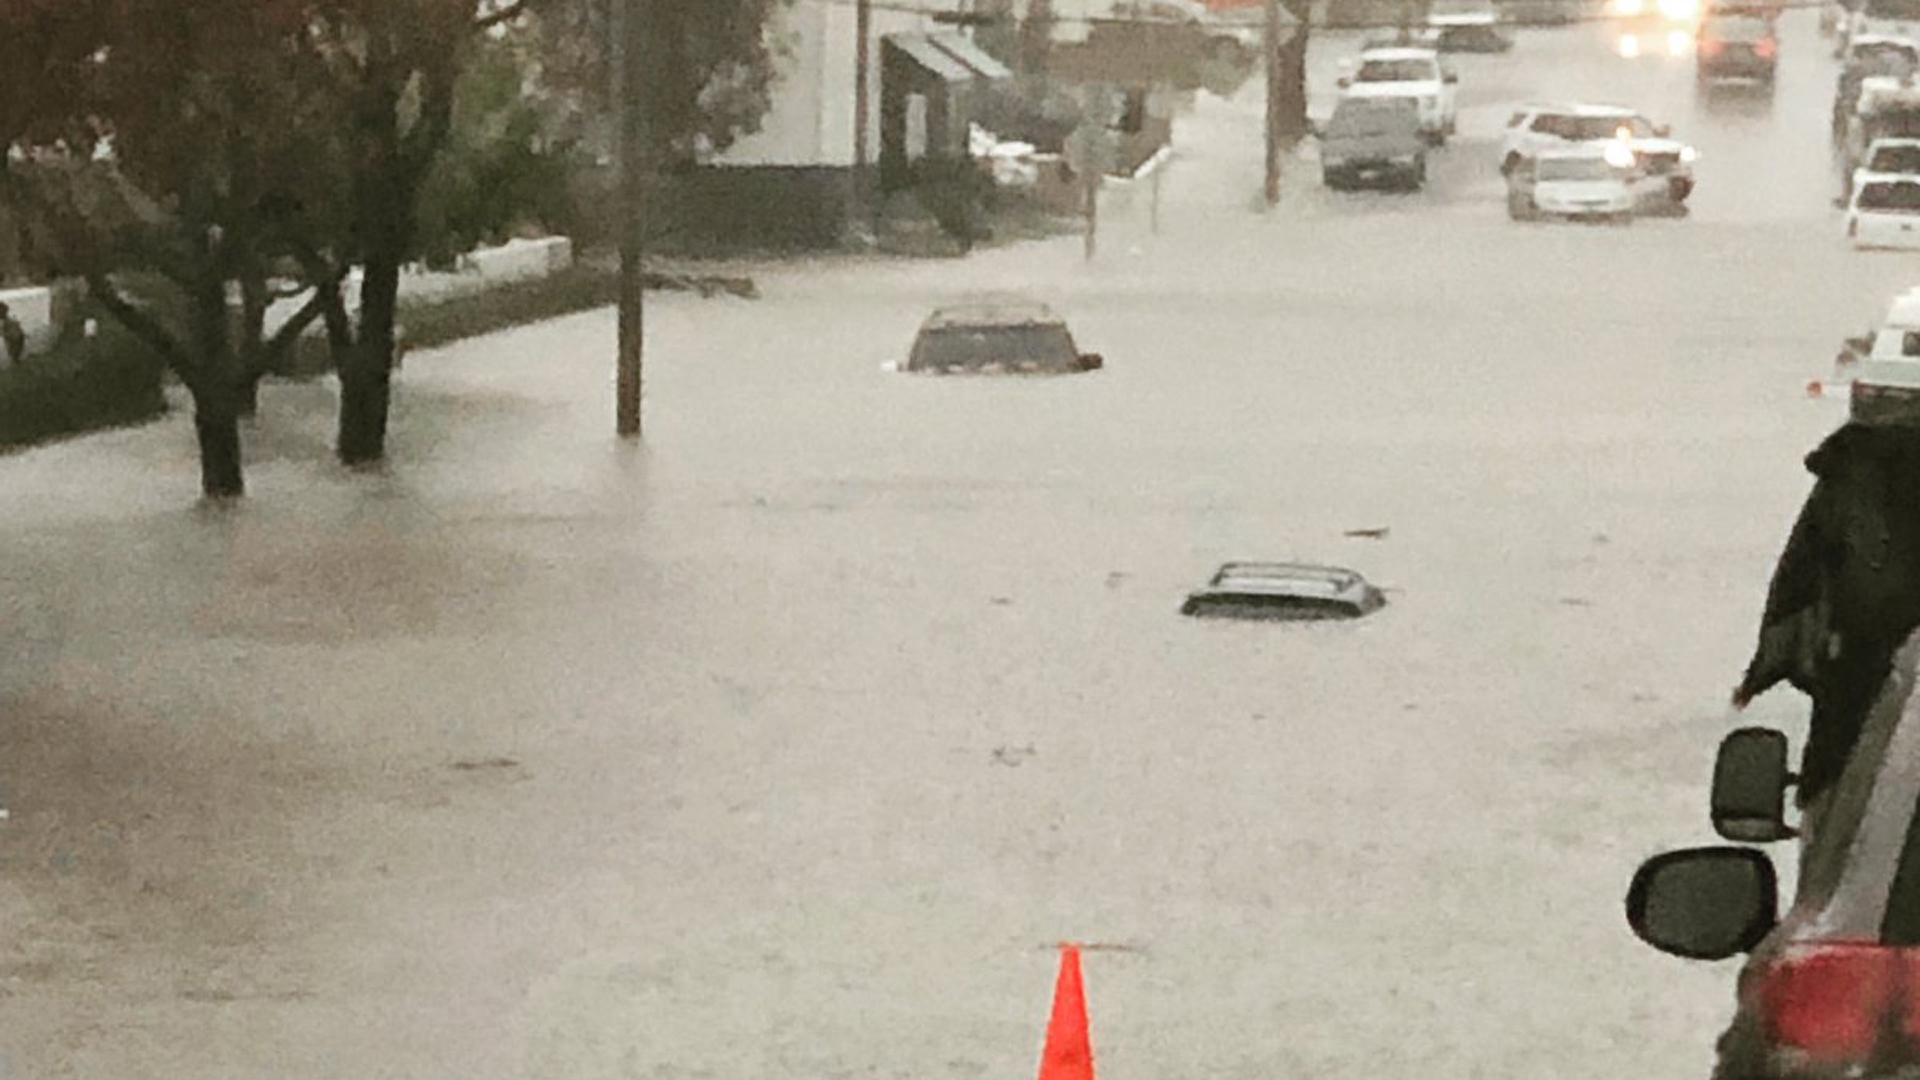 Water submerges cars at 17th Street and Pomona Avenue in Costa Mesa during a storm on Dec. 6, 2018. (Credit: Costa Mesa Police Department)